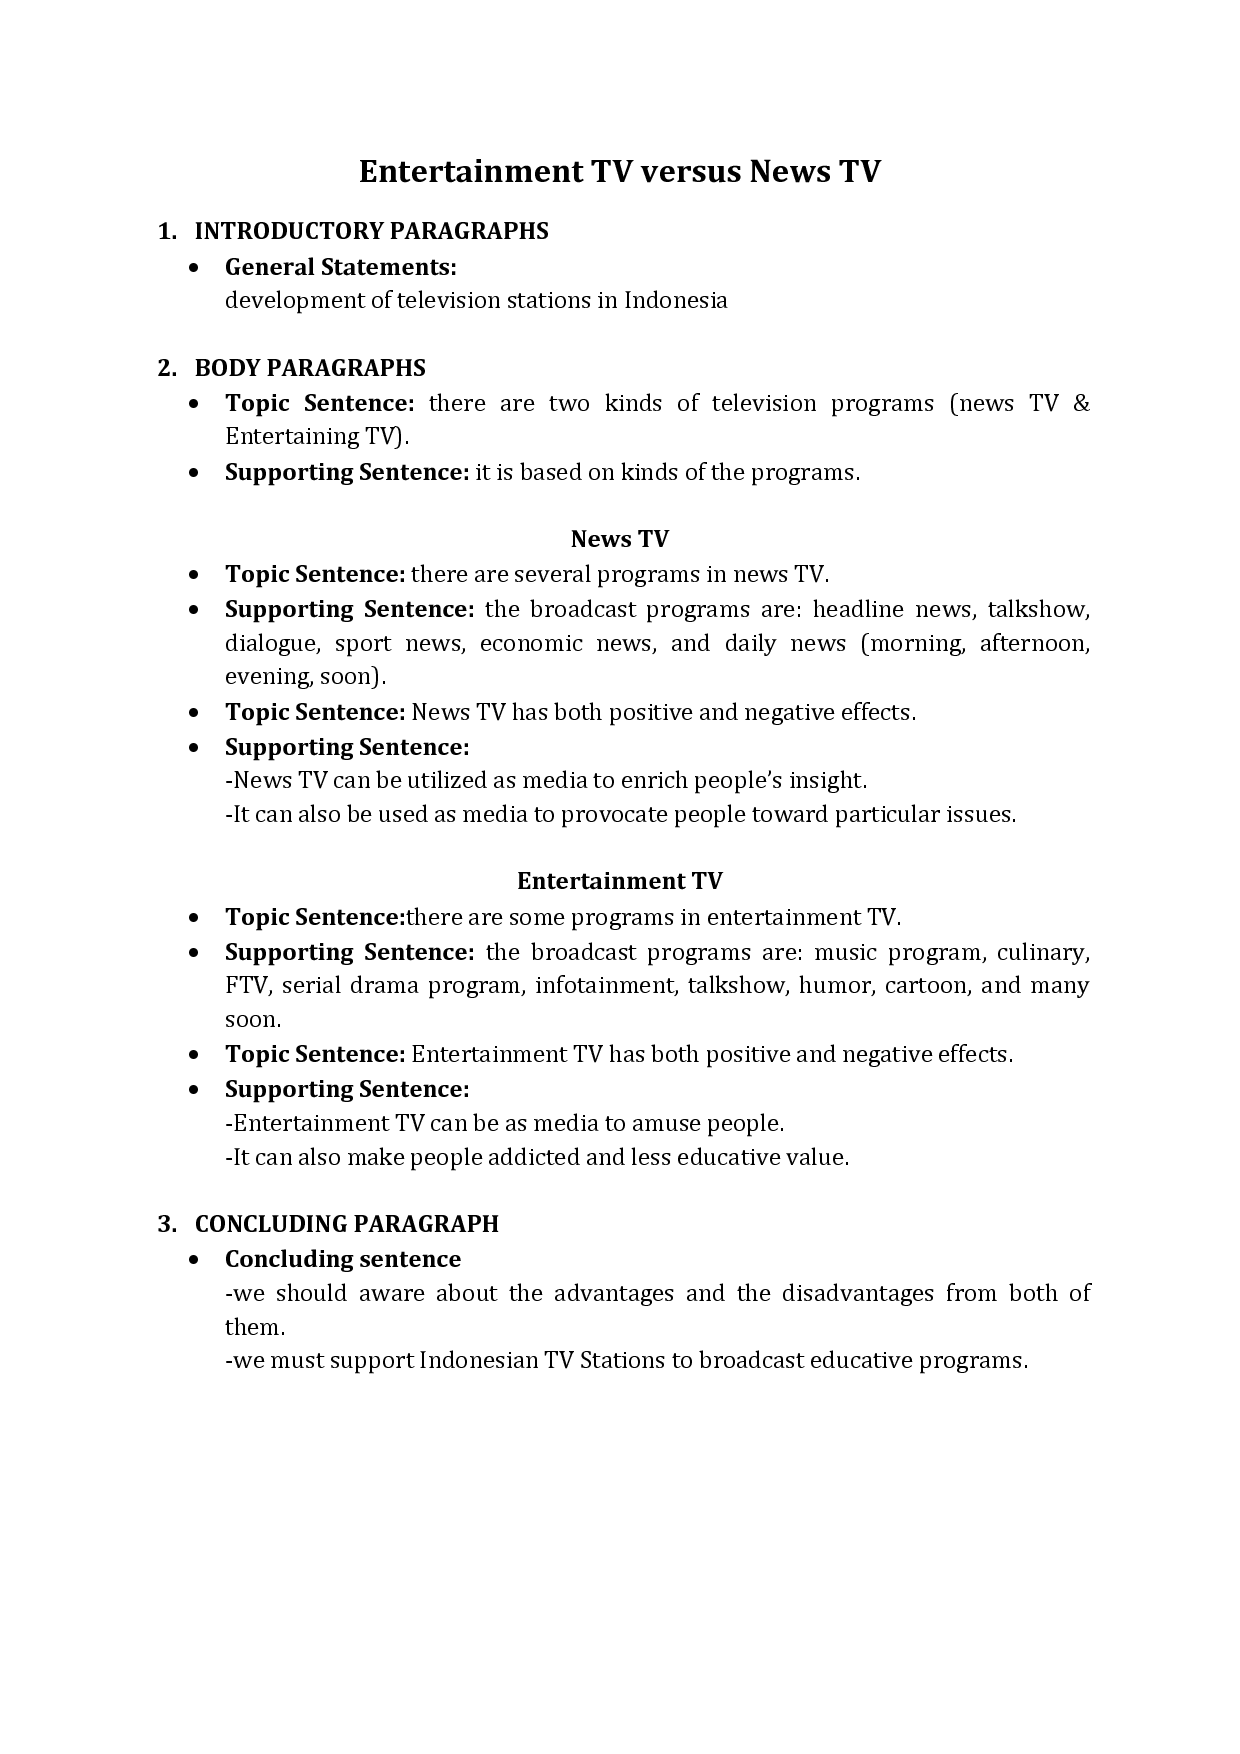 005 Fbunmxinib How To Write An Essay Outline Excellent Middle School A Term Paper Pdf Research Mla Format Full